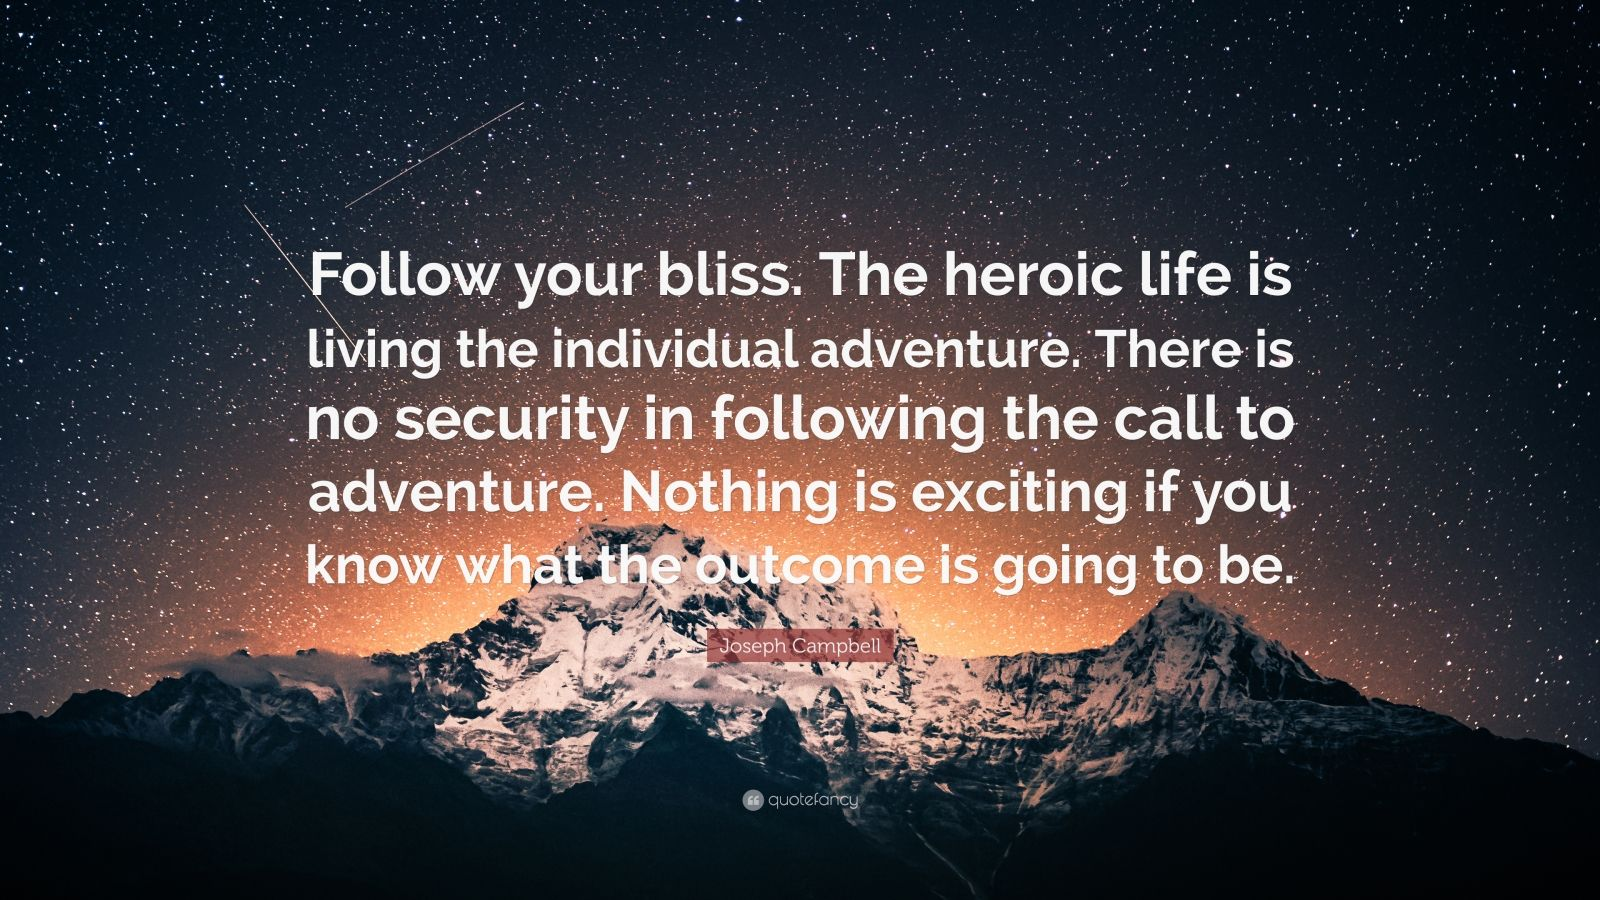 """Joseph Campbell Quote: """"Follow your bliss. The heroic life is living the individual adventure. There is no security in following the call to adventure. Nothing is exciting if you know what the outcome is going to be."""""""